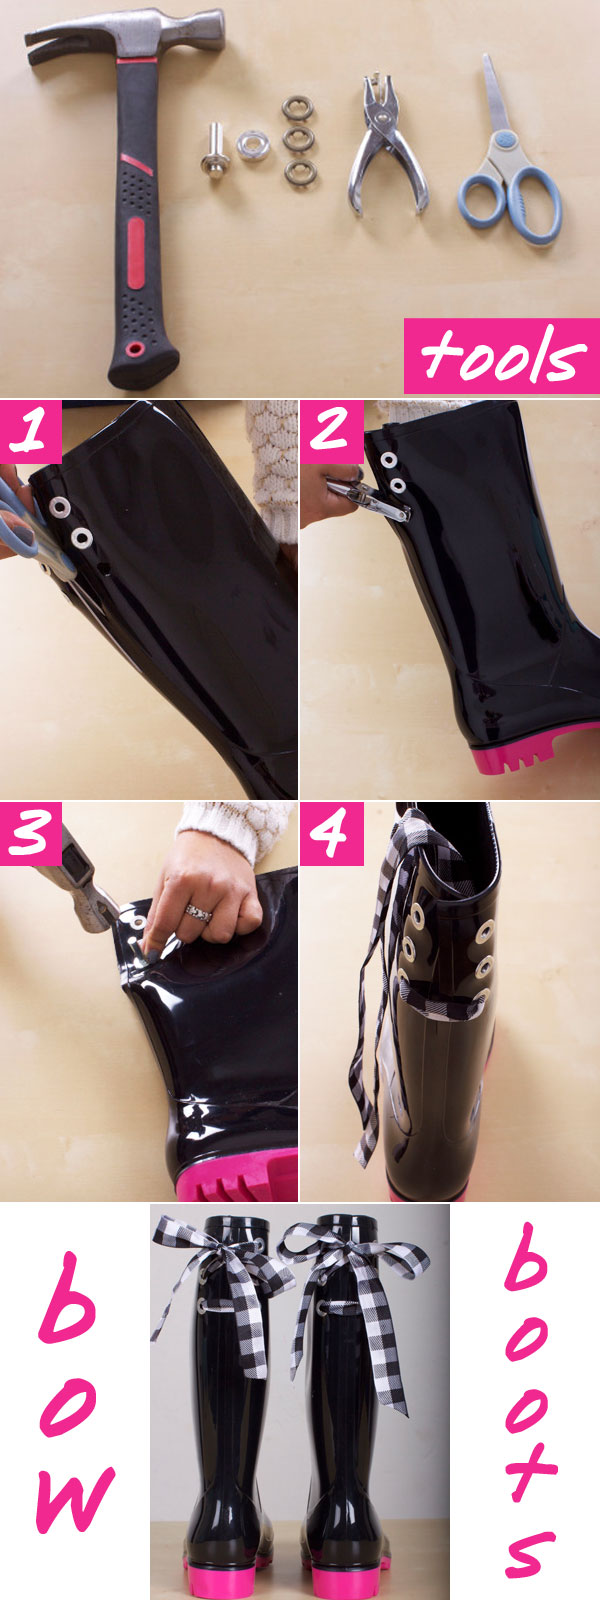 Rain Boots With Bows - Cute Rain Boots